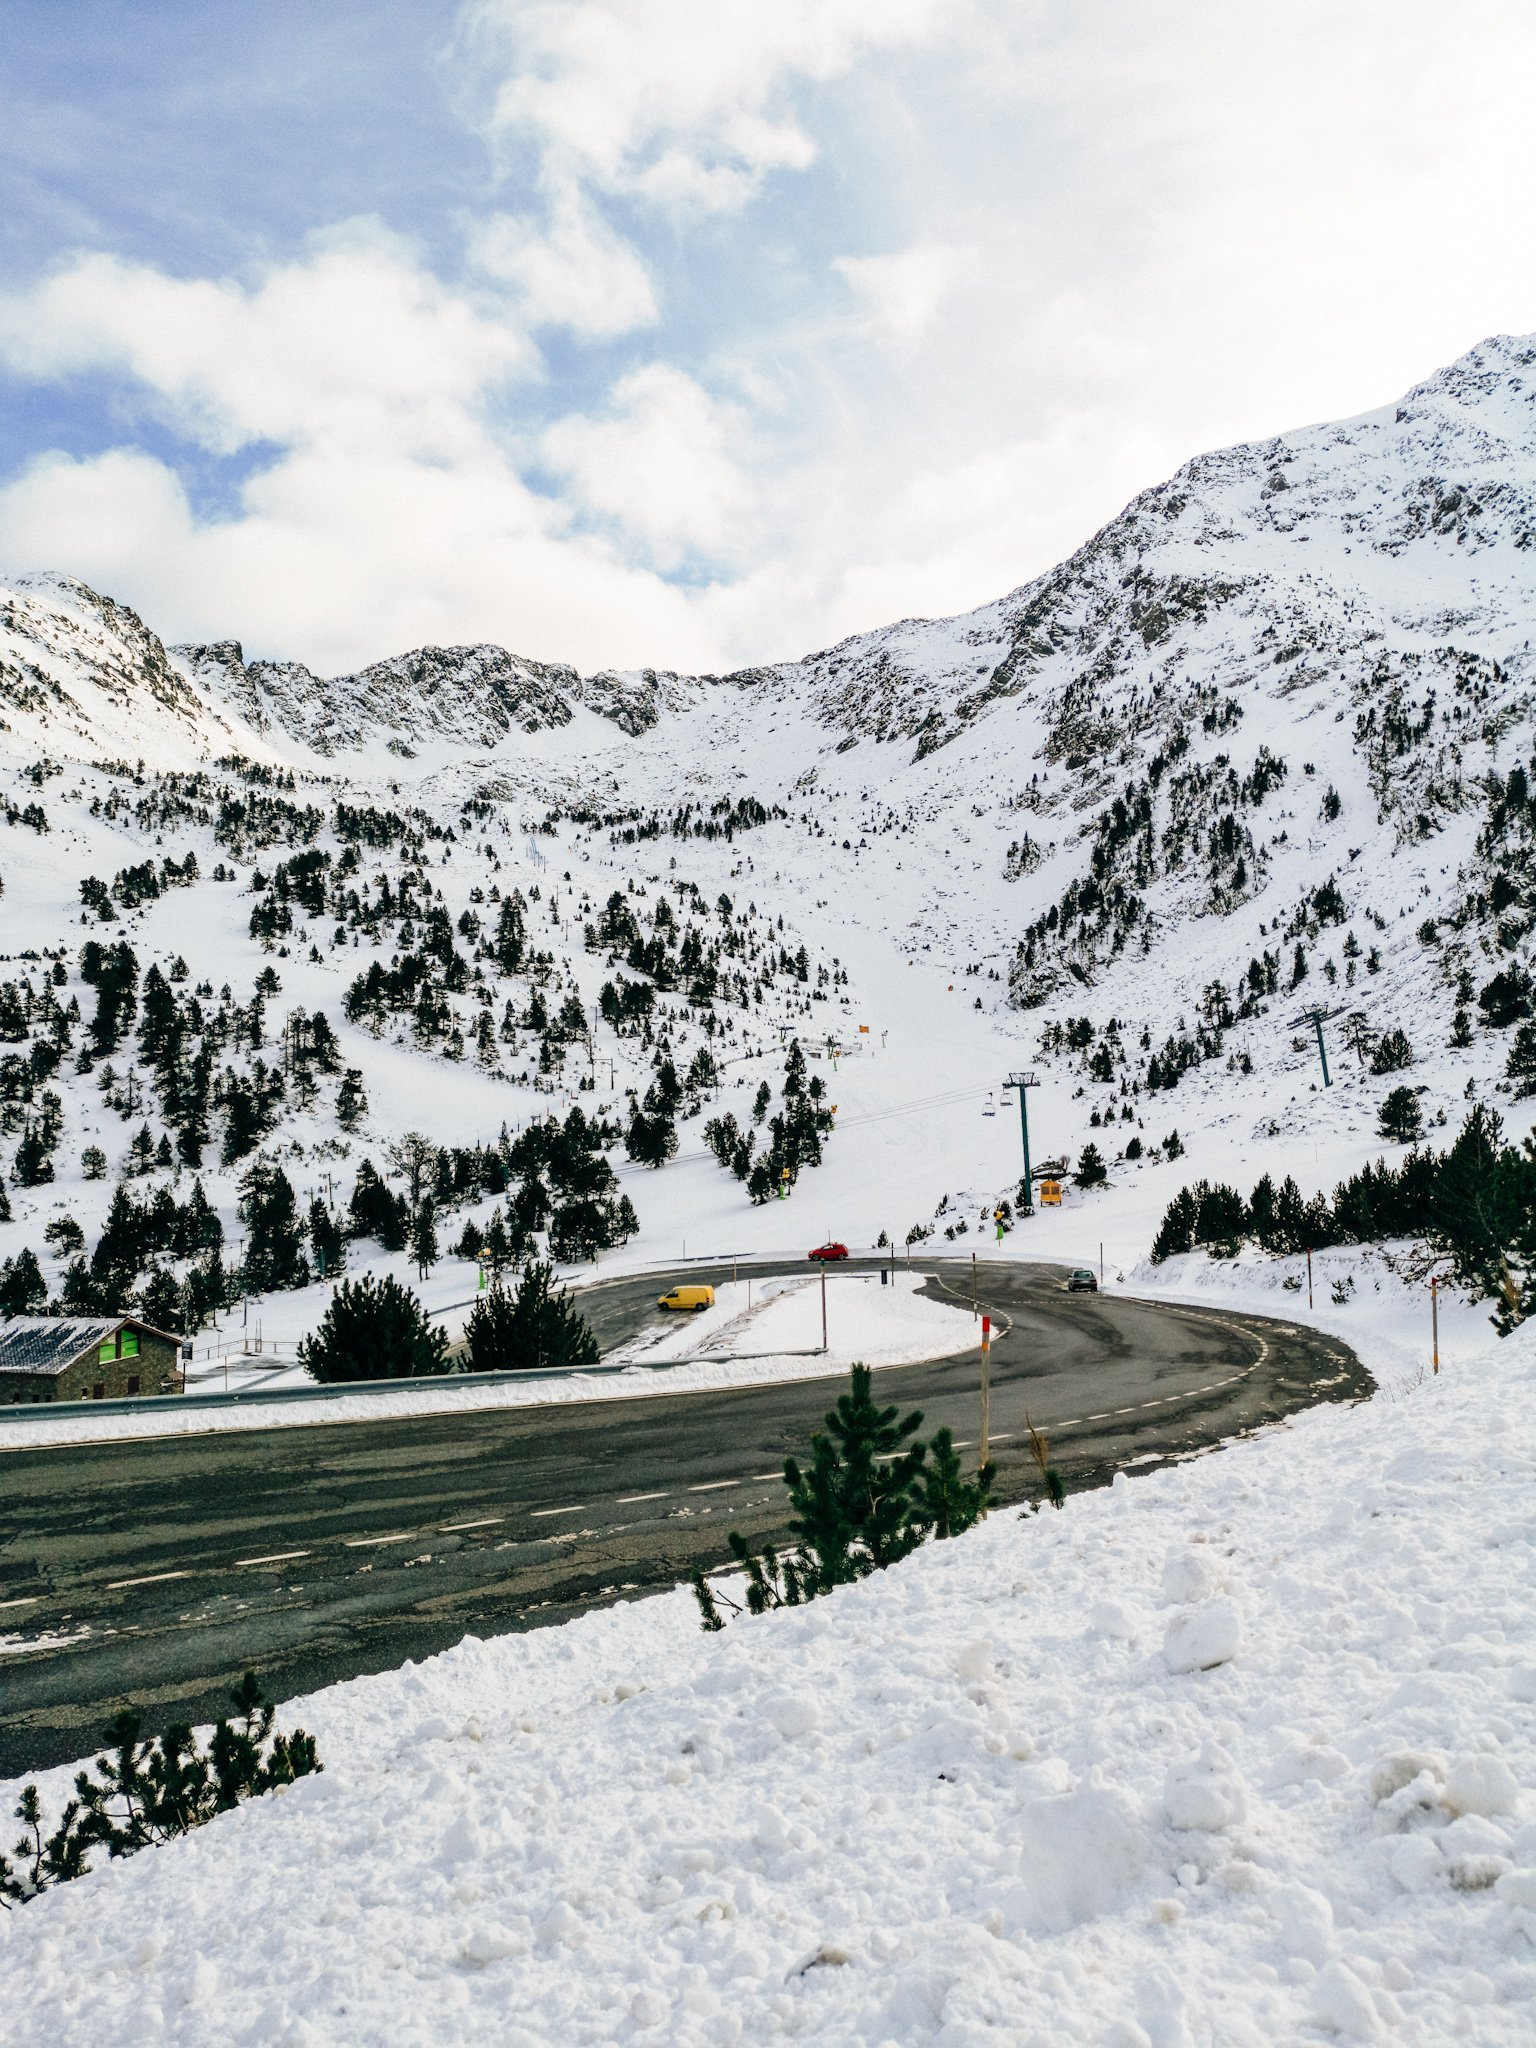 Ordino Ski Resort